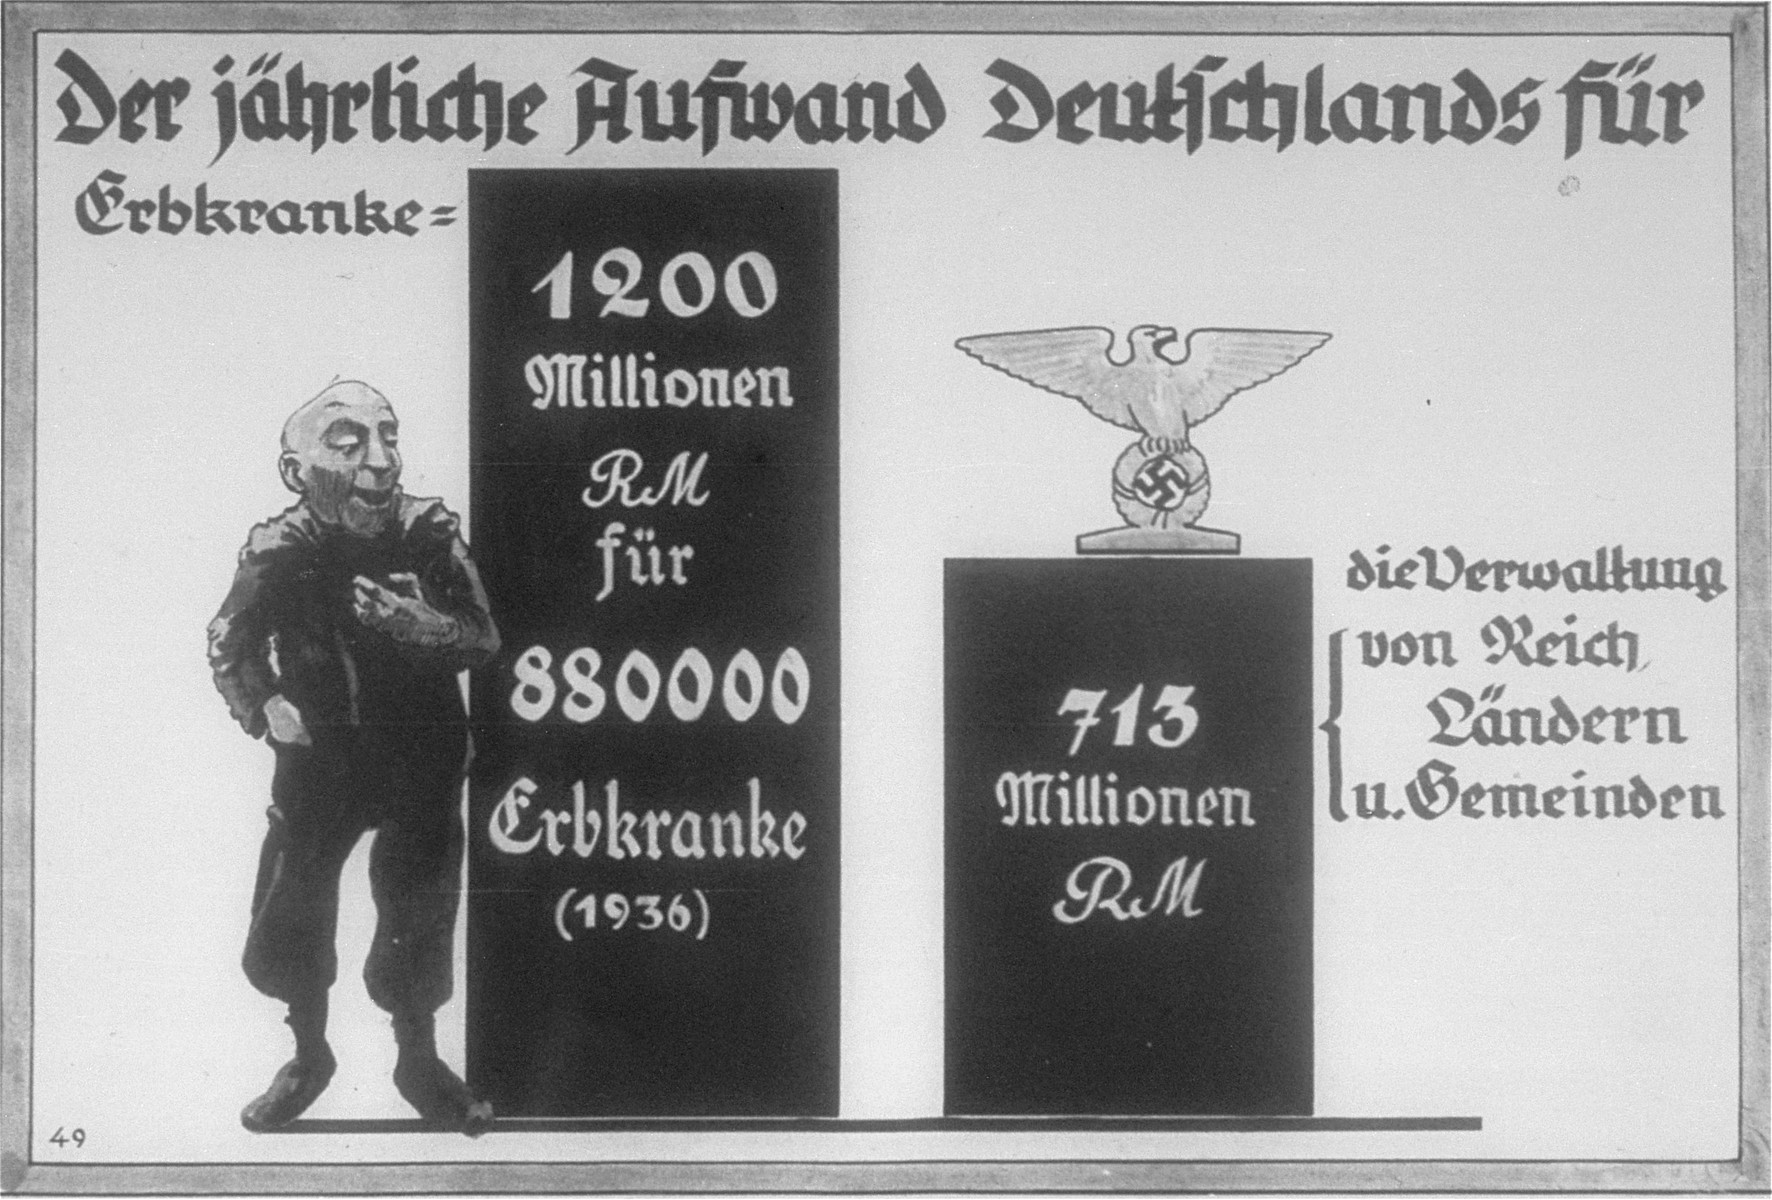 Propaganda slide featuring a chart produced by the Reich Propaganda Office showing that in 1936 the total cost of caring for 880,000 people ill with hereditary disease was 1200 million Reichsmarks, which was almost double the 713 million RM spent on the administration of the national, state, and local government.